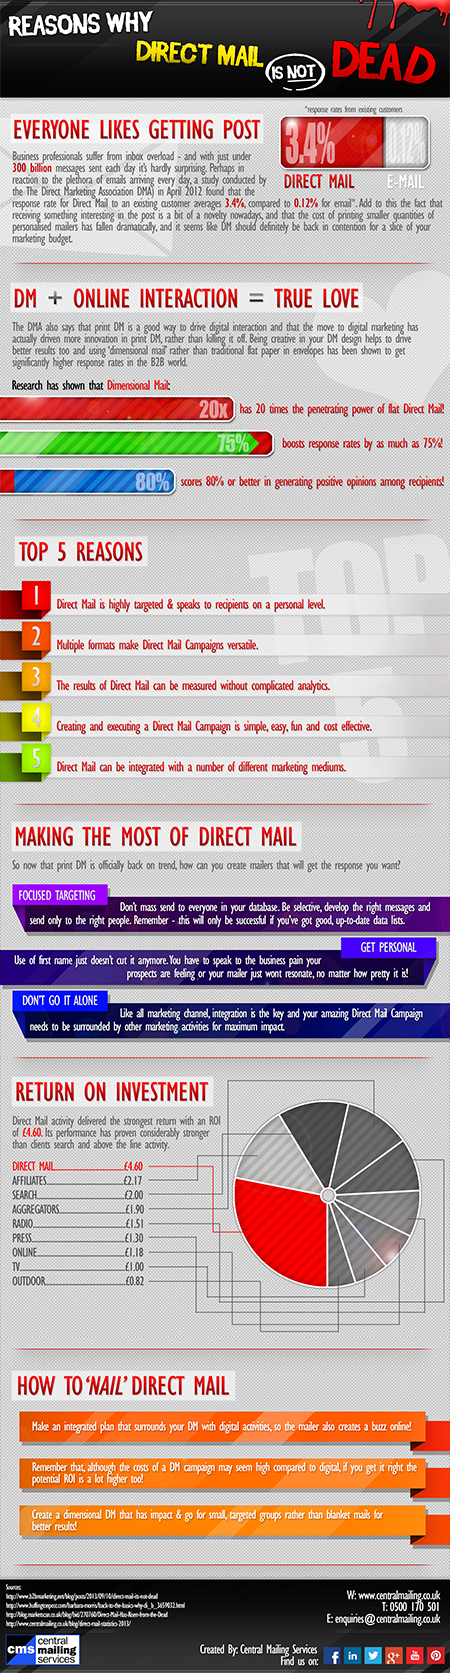 Direct Mail is not Dead [WEB]